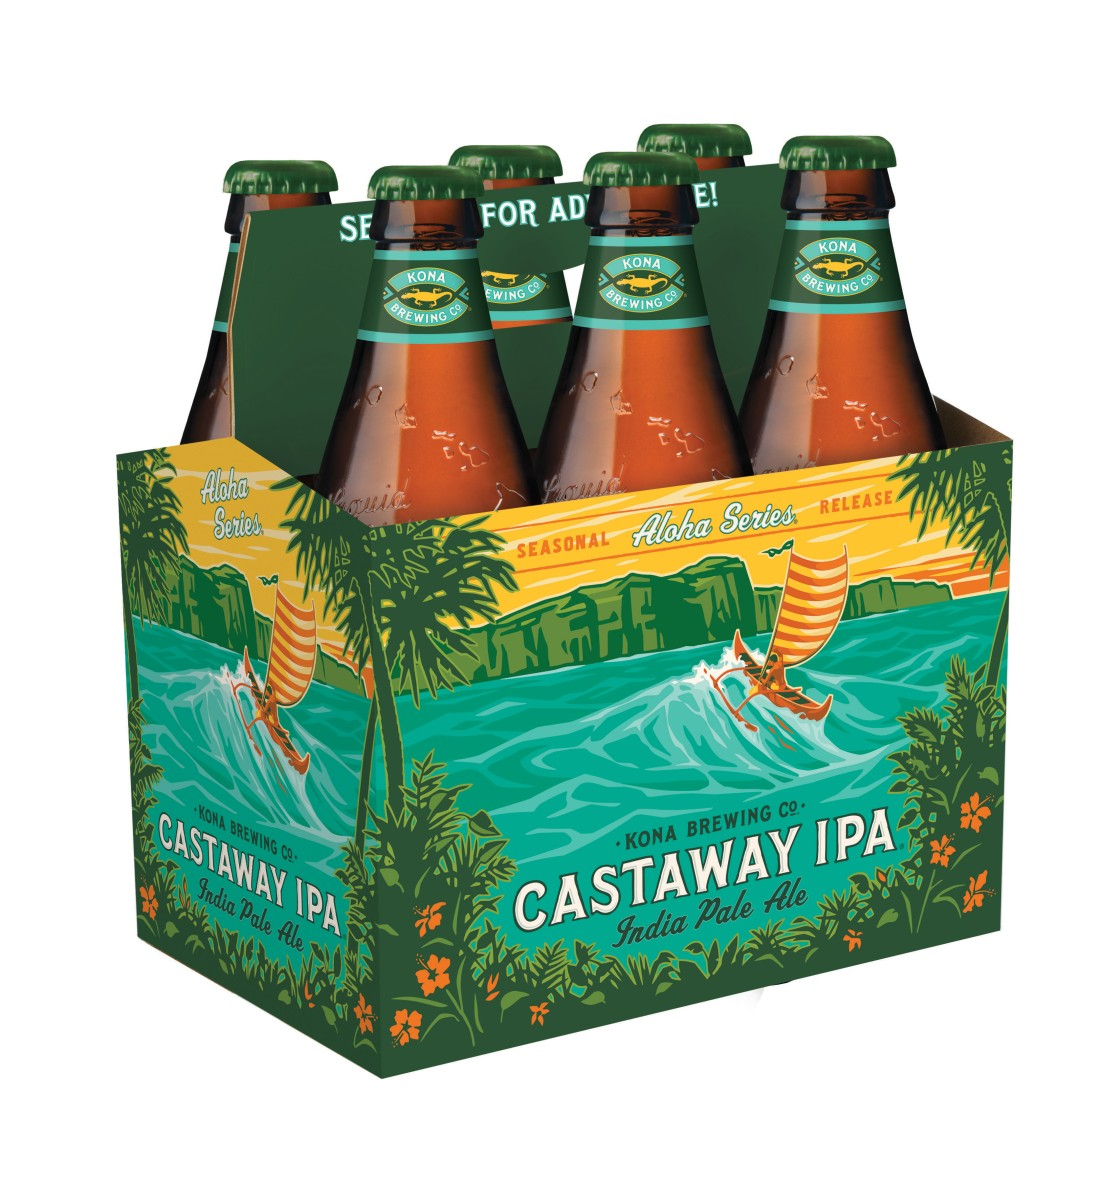 Kona Brewing's Castaway IPA Gets Bottled